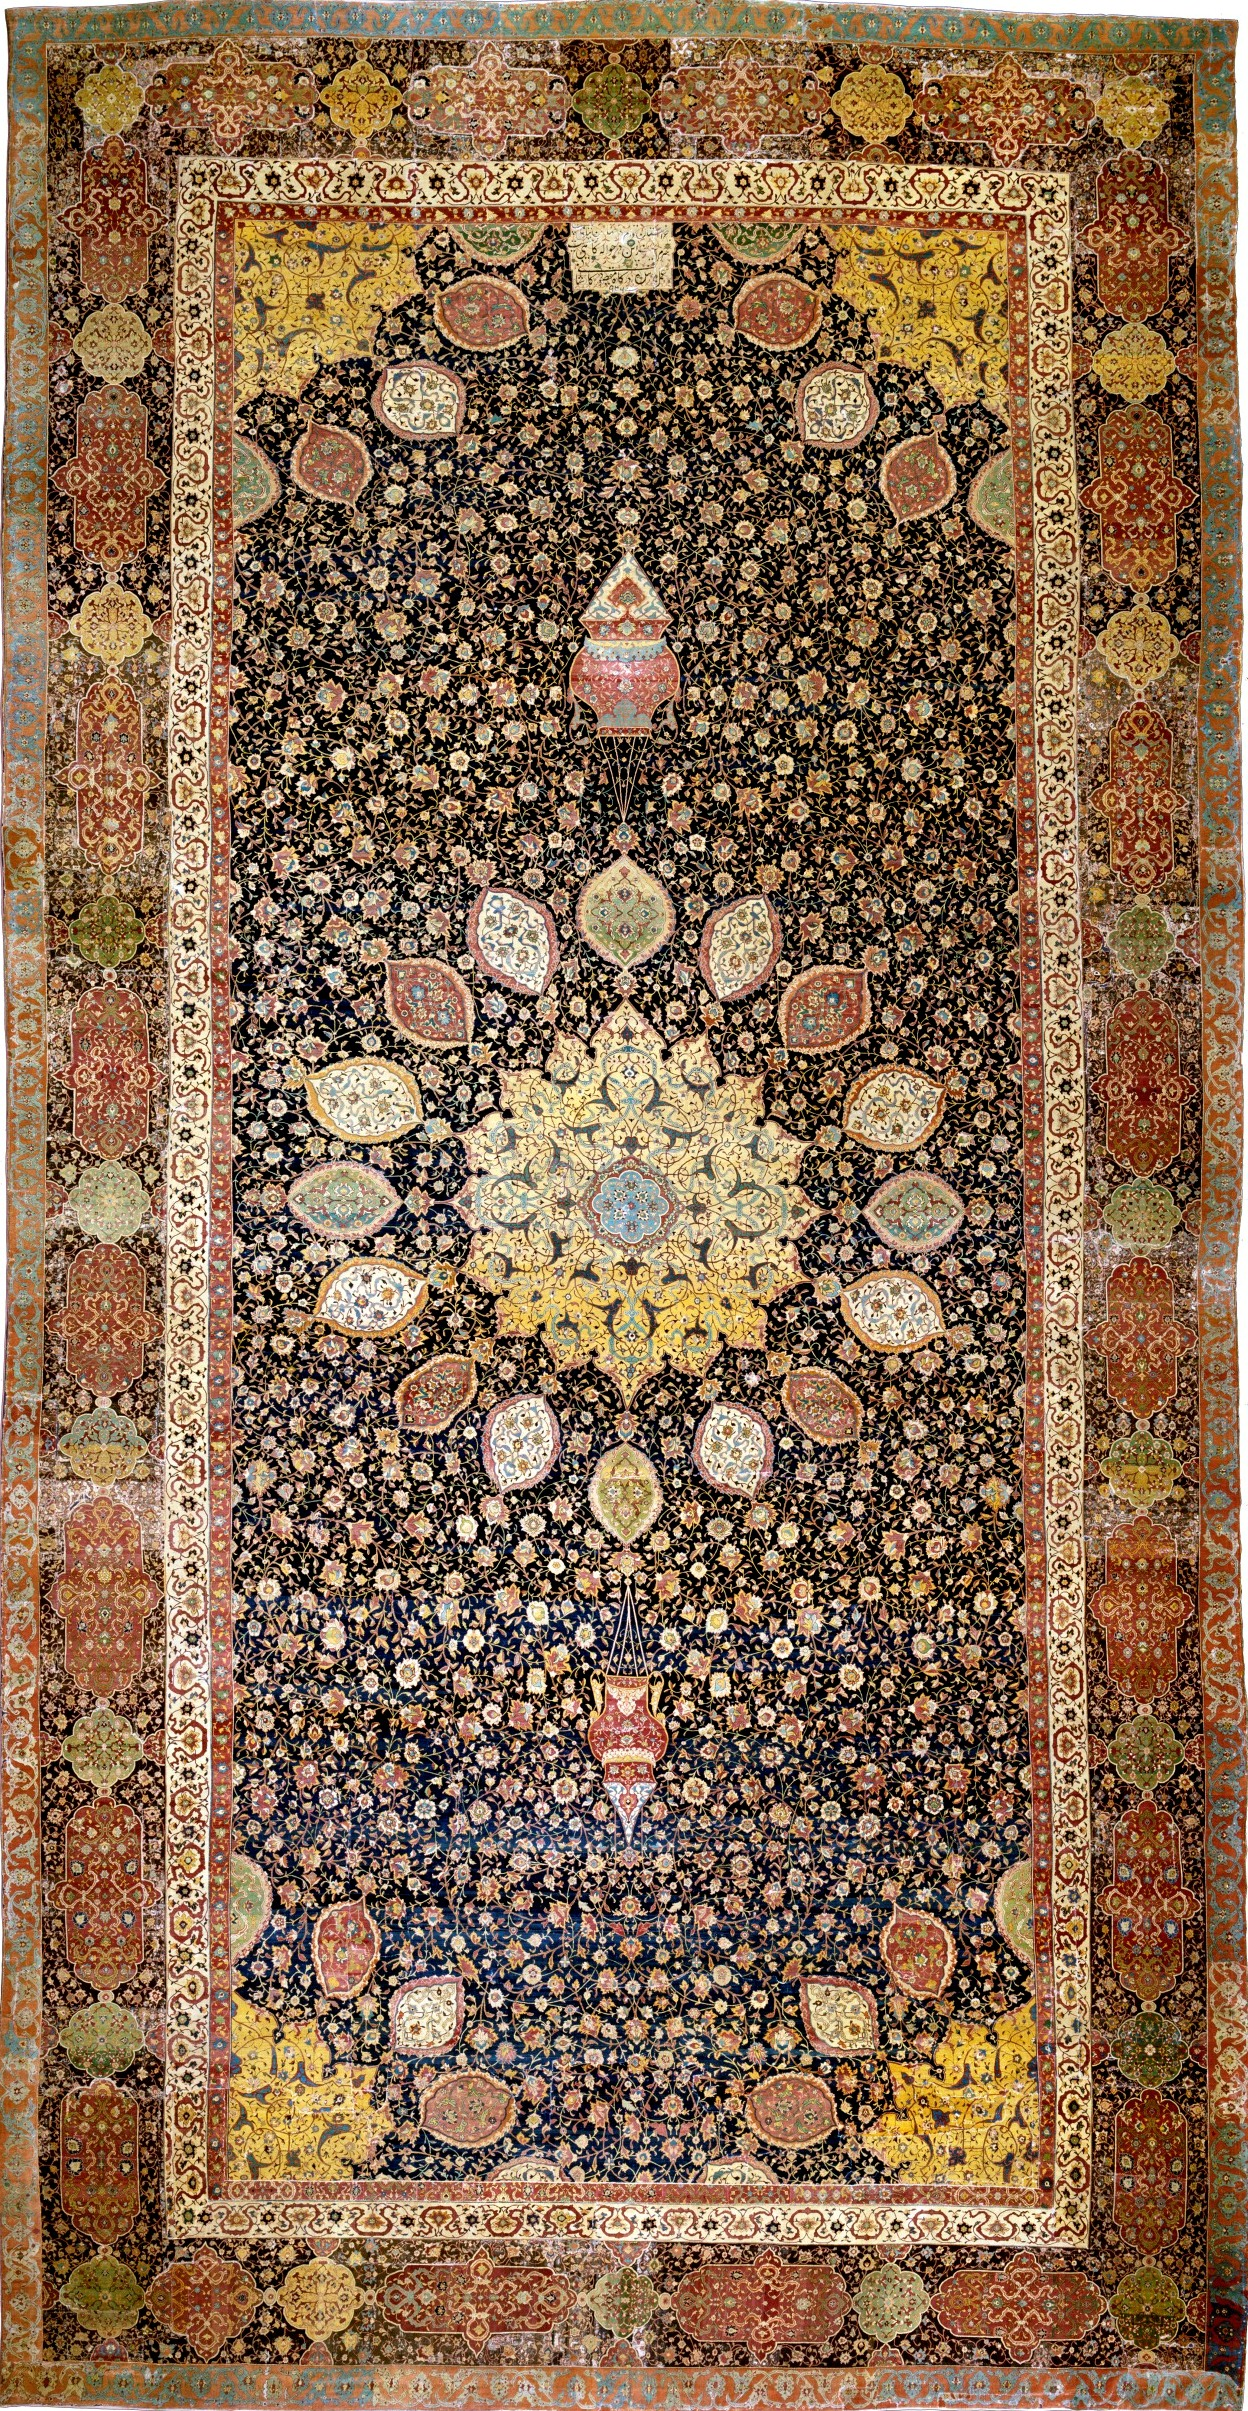 Ardabil Carpet At The Vu0026A. Inscription At The Top Of The Field Close To The  Border.